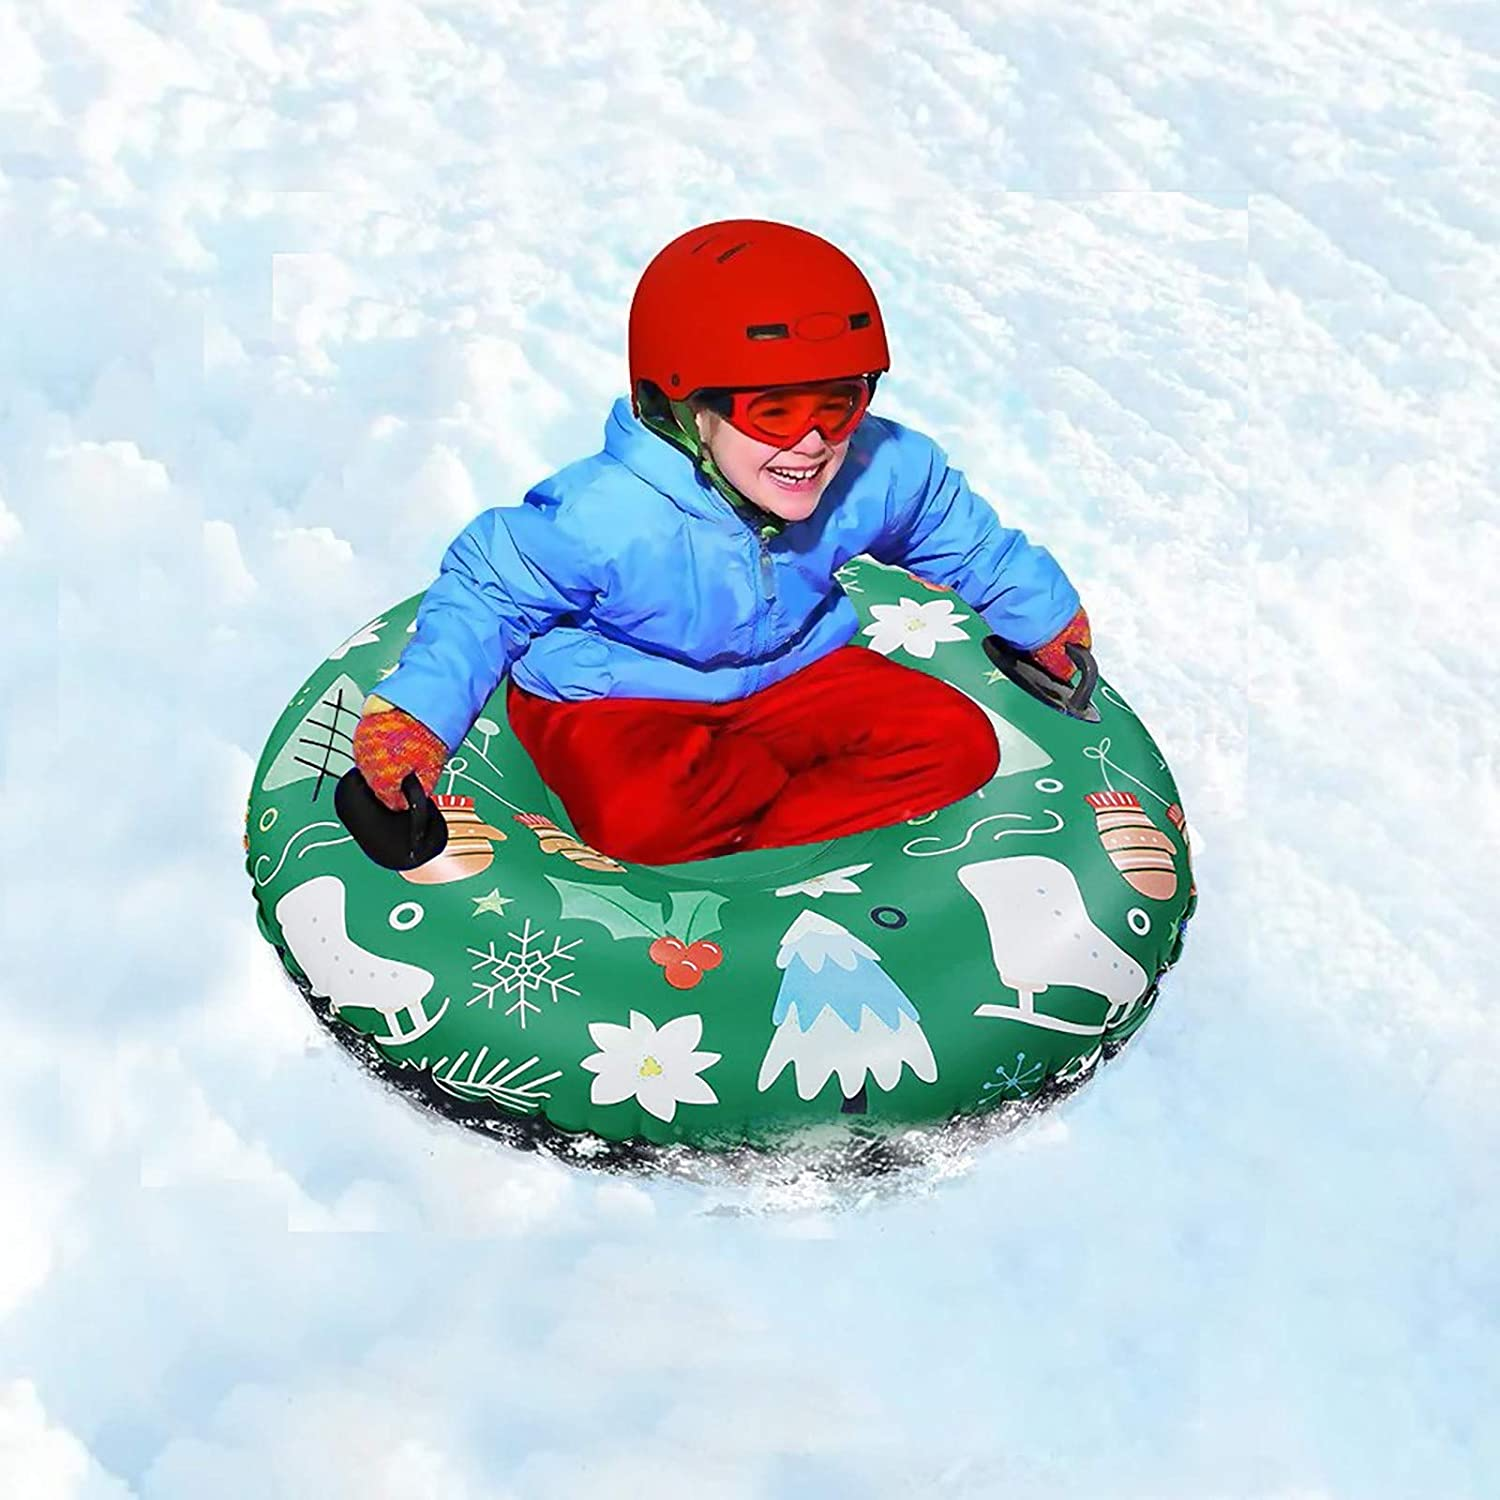 Inflatable Snow Sled for Kids and Adults YZHM Snow Tube Winter Skiing Ring Heavy Duty Outdoor Snow Tube for Sledding,Towable Freeze-Proof /& Wear-Resistant Snow Tube with 2 Handles